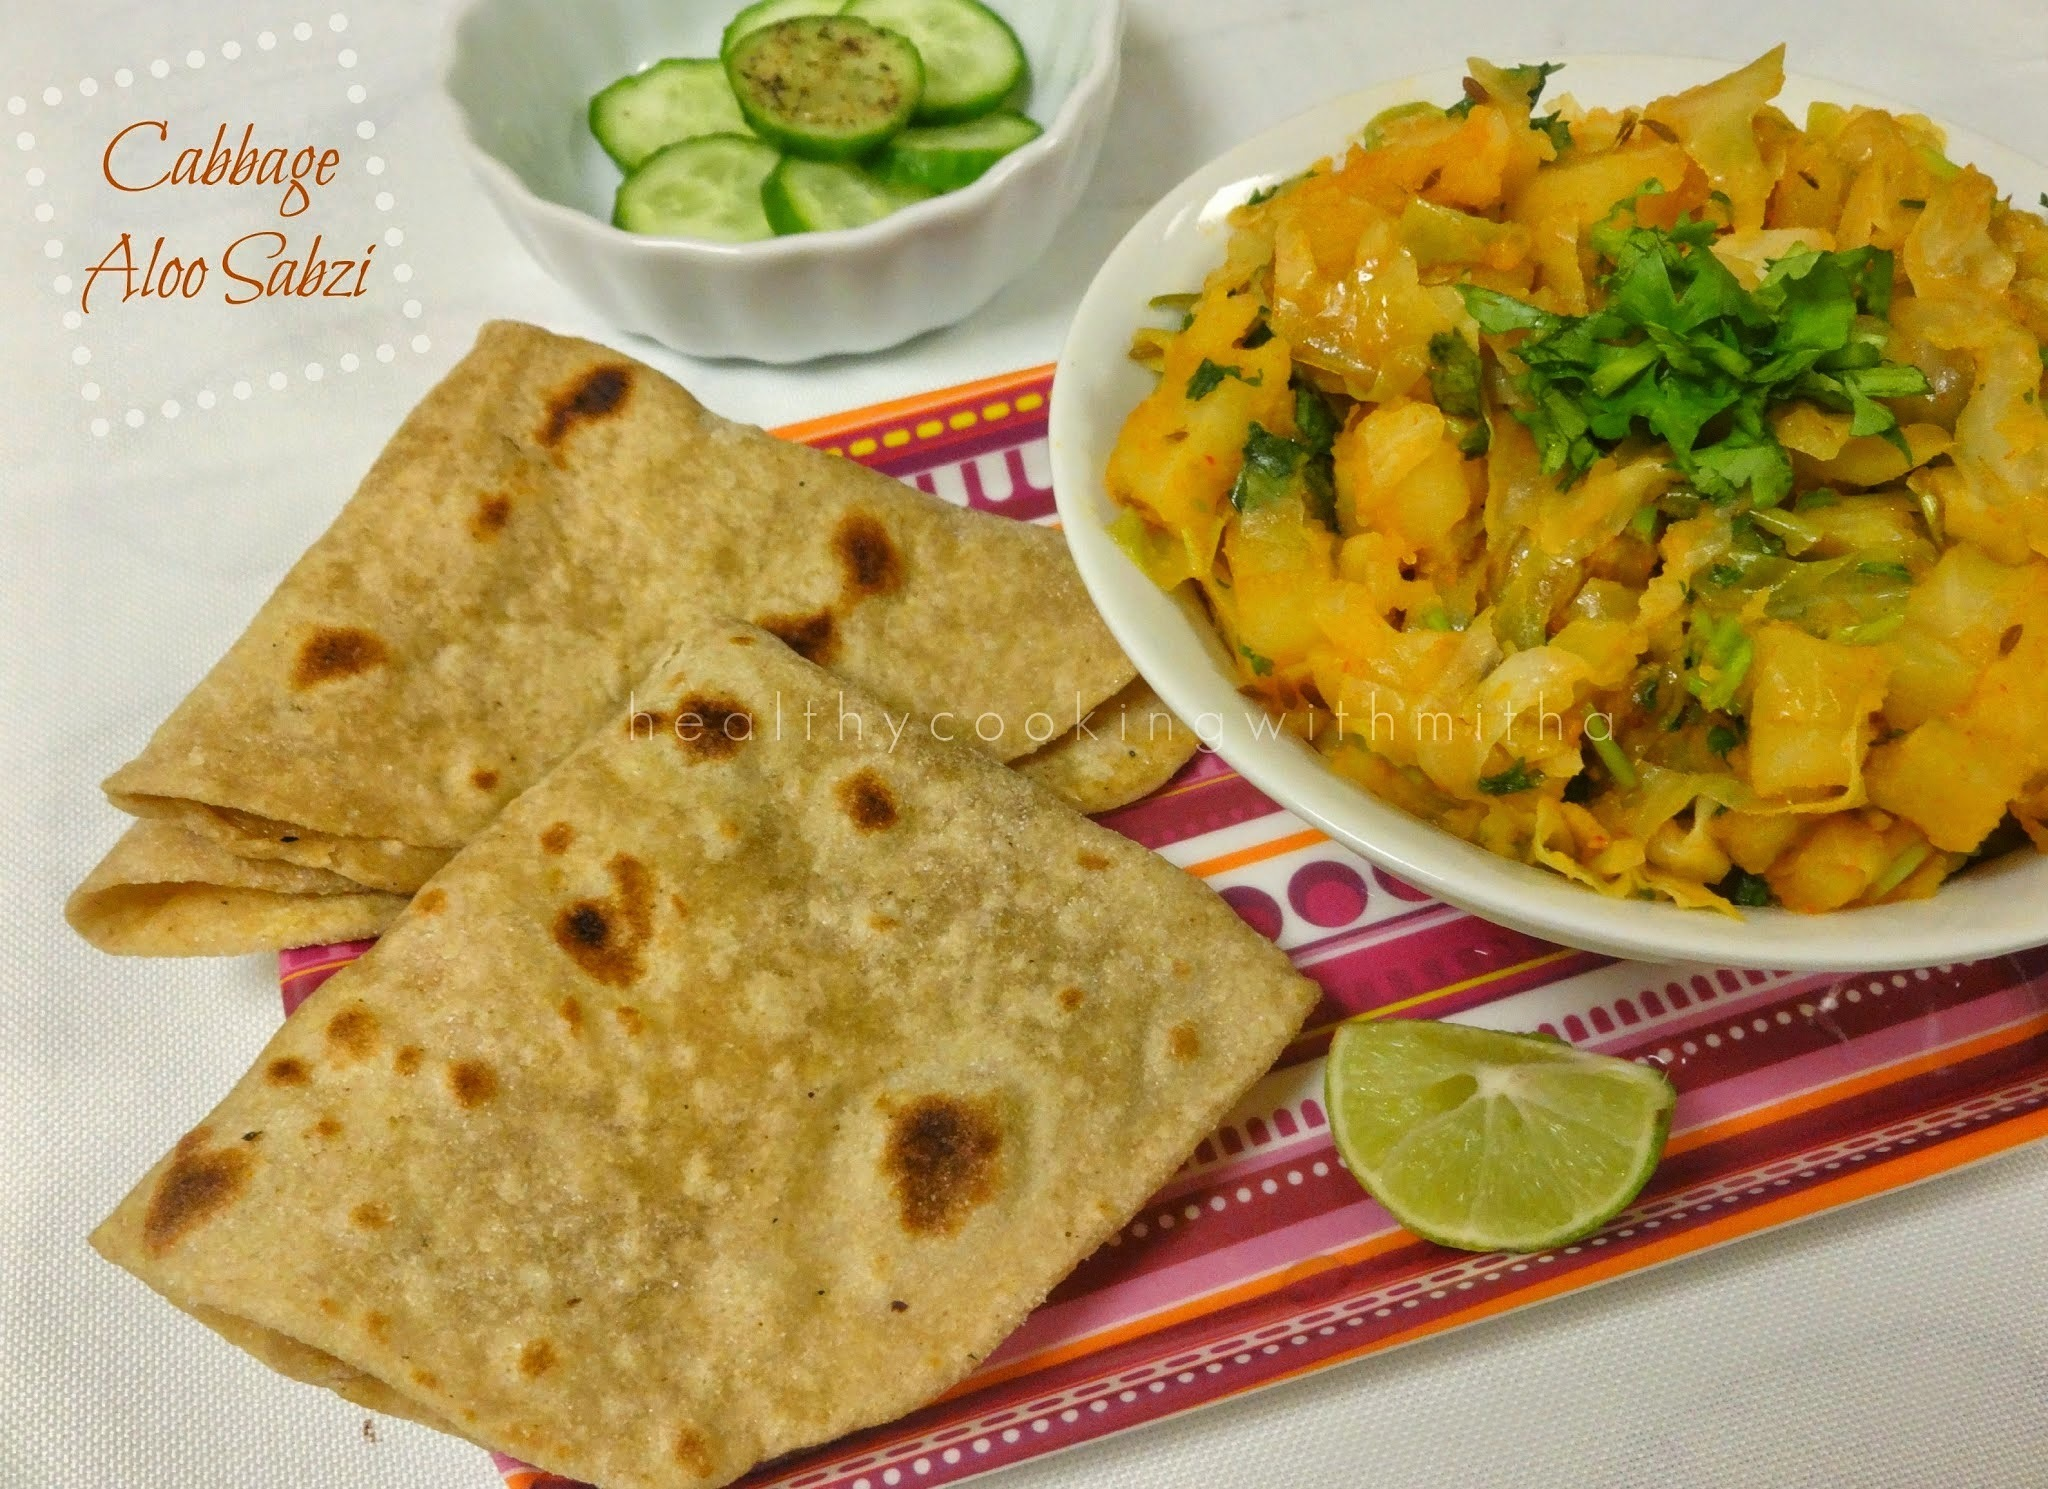 Cabbage Aloo Sabzi | North Indian style Cabbage & Potatoes